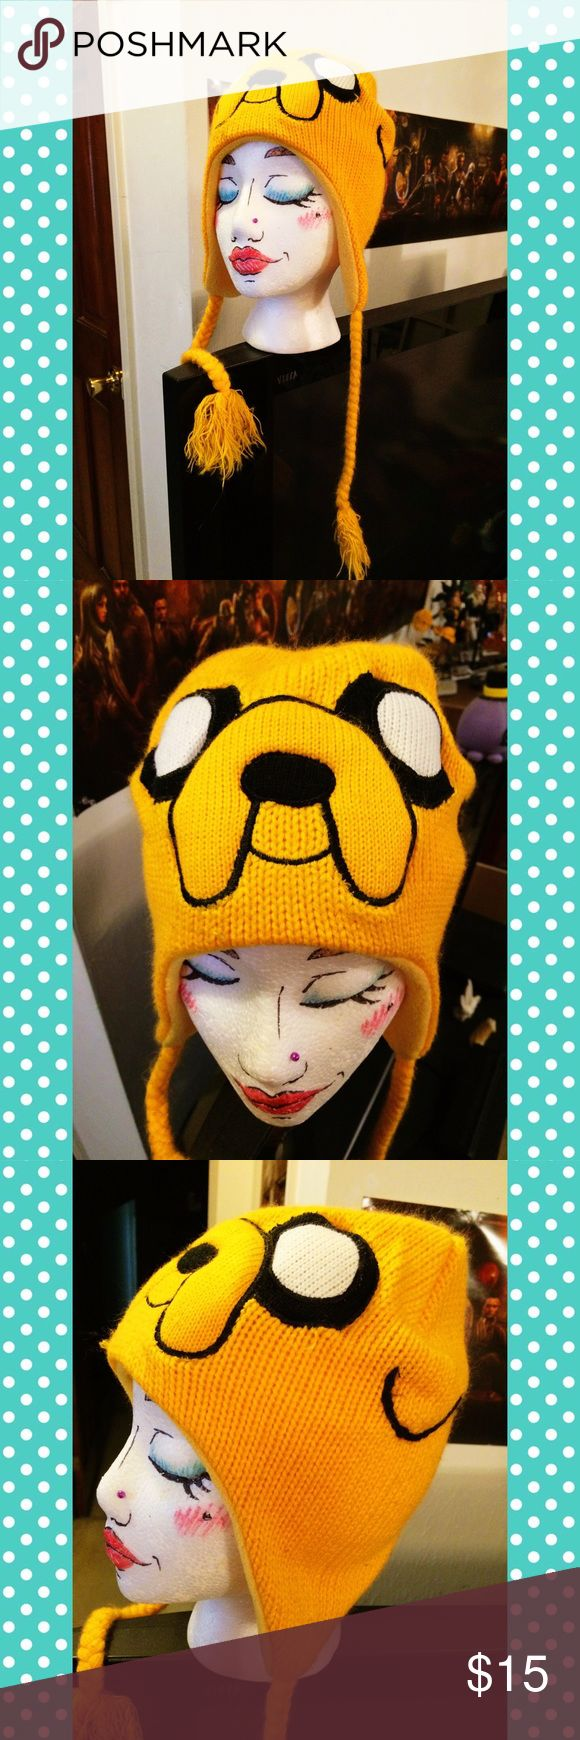 Adventure Time Jake the Dog Hat This hat has the face of Jake the Dog from Adventure Time! It's super cute and comfy, and can stretch to fit anyone's head. It's been worn maybe once. Make me an offer 😊 Adventure Time Accessories Hats